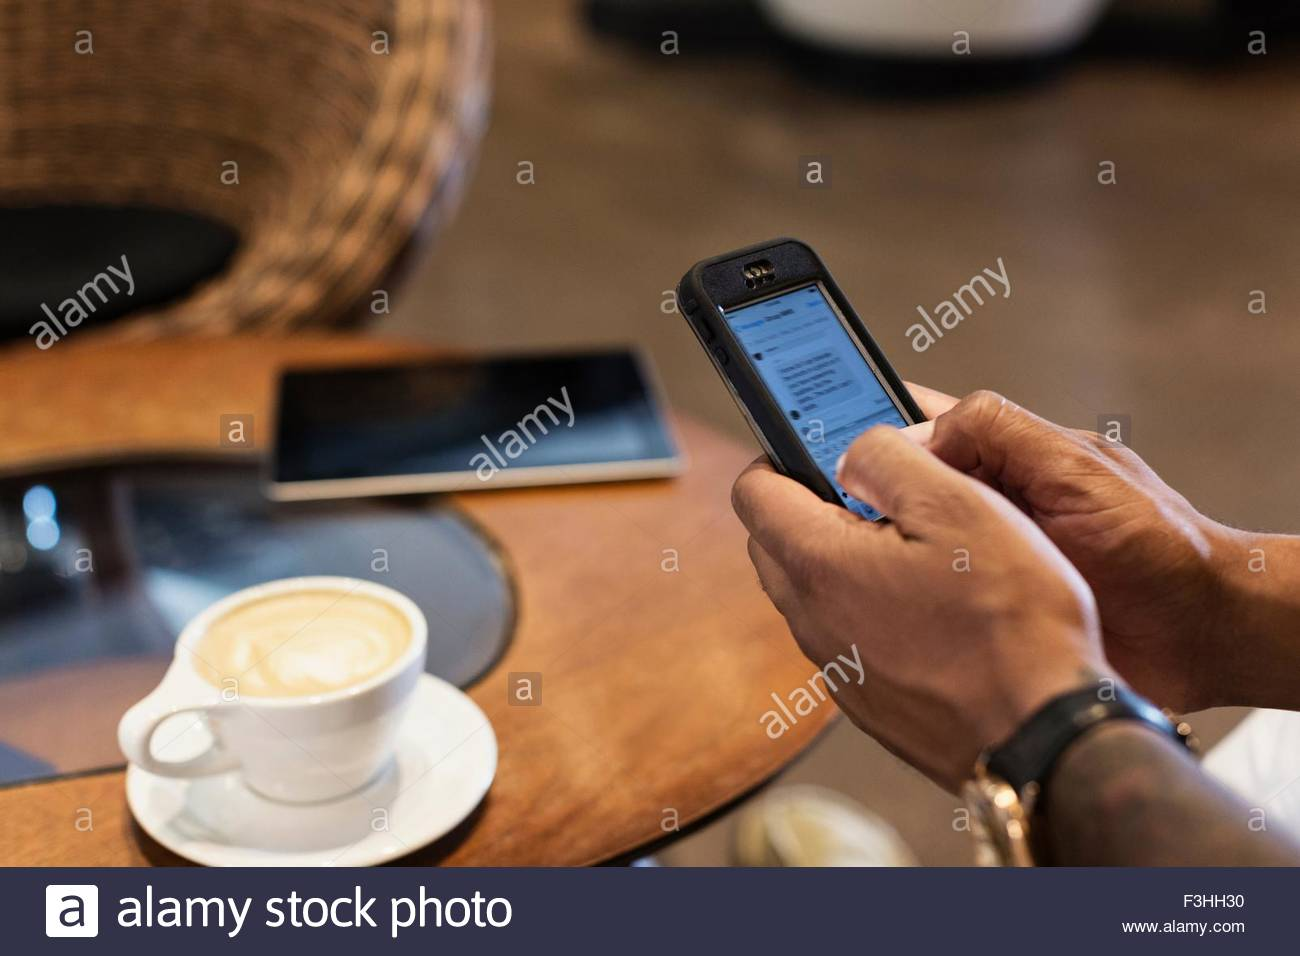 Young man in coffee shop using smartphone, focus on hands - Stock Image